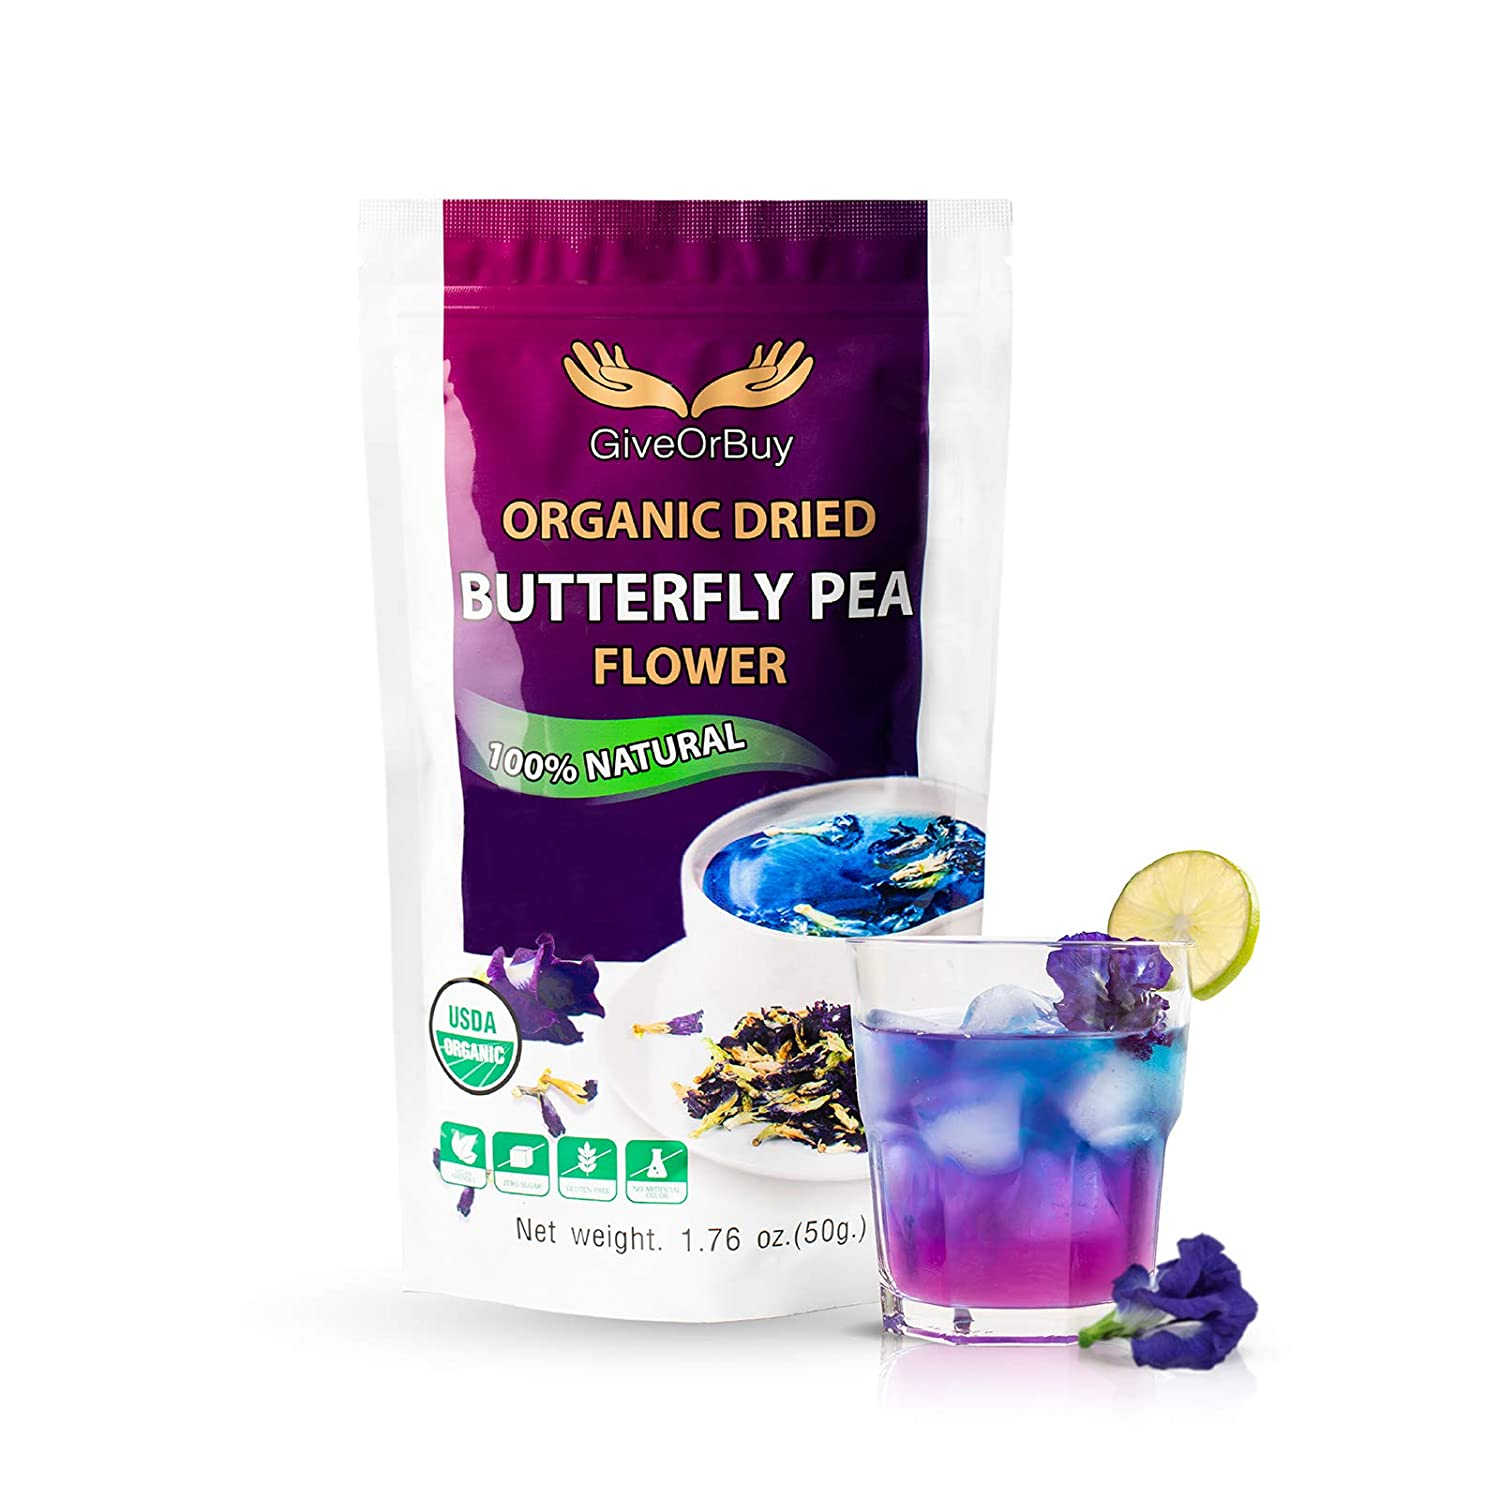 Butterfly Pea Flower 1.75 Oz - Organic Dried Butterfly Pea Flowers Gluten Free Sugar Free Vegan Rich Healthy Herbal Butterfly Pea Tea - Butterfly Tea For Drinks, Food Coloring By Giveorbuy